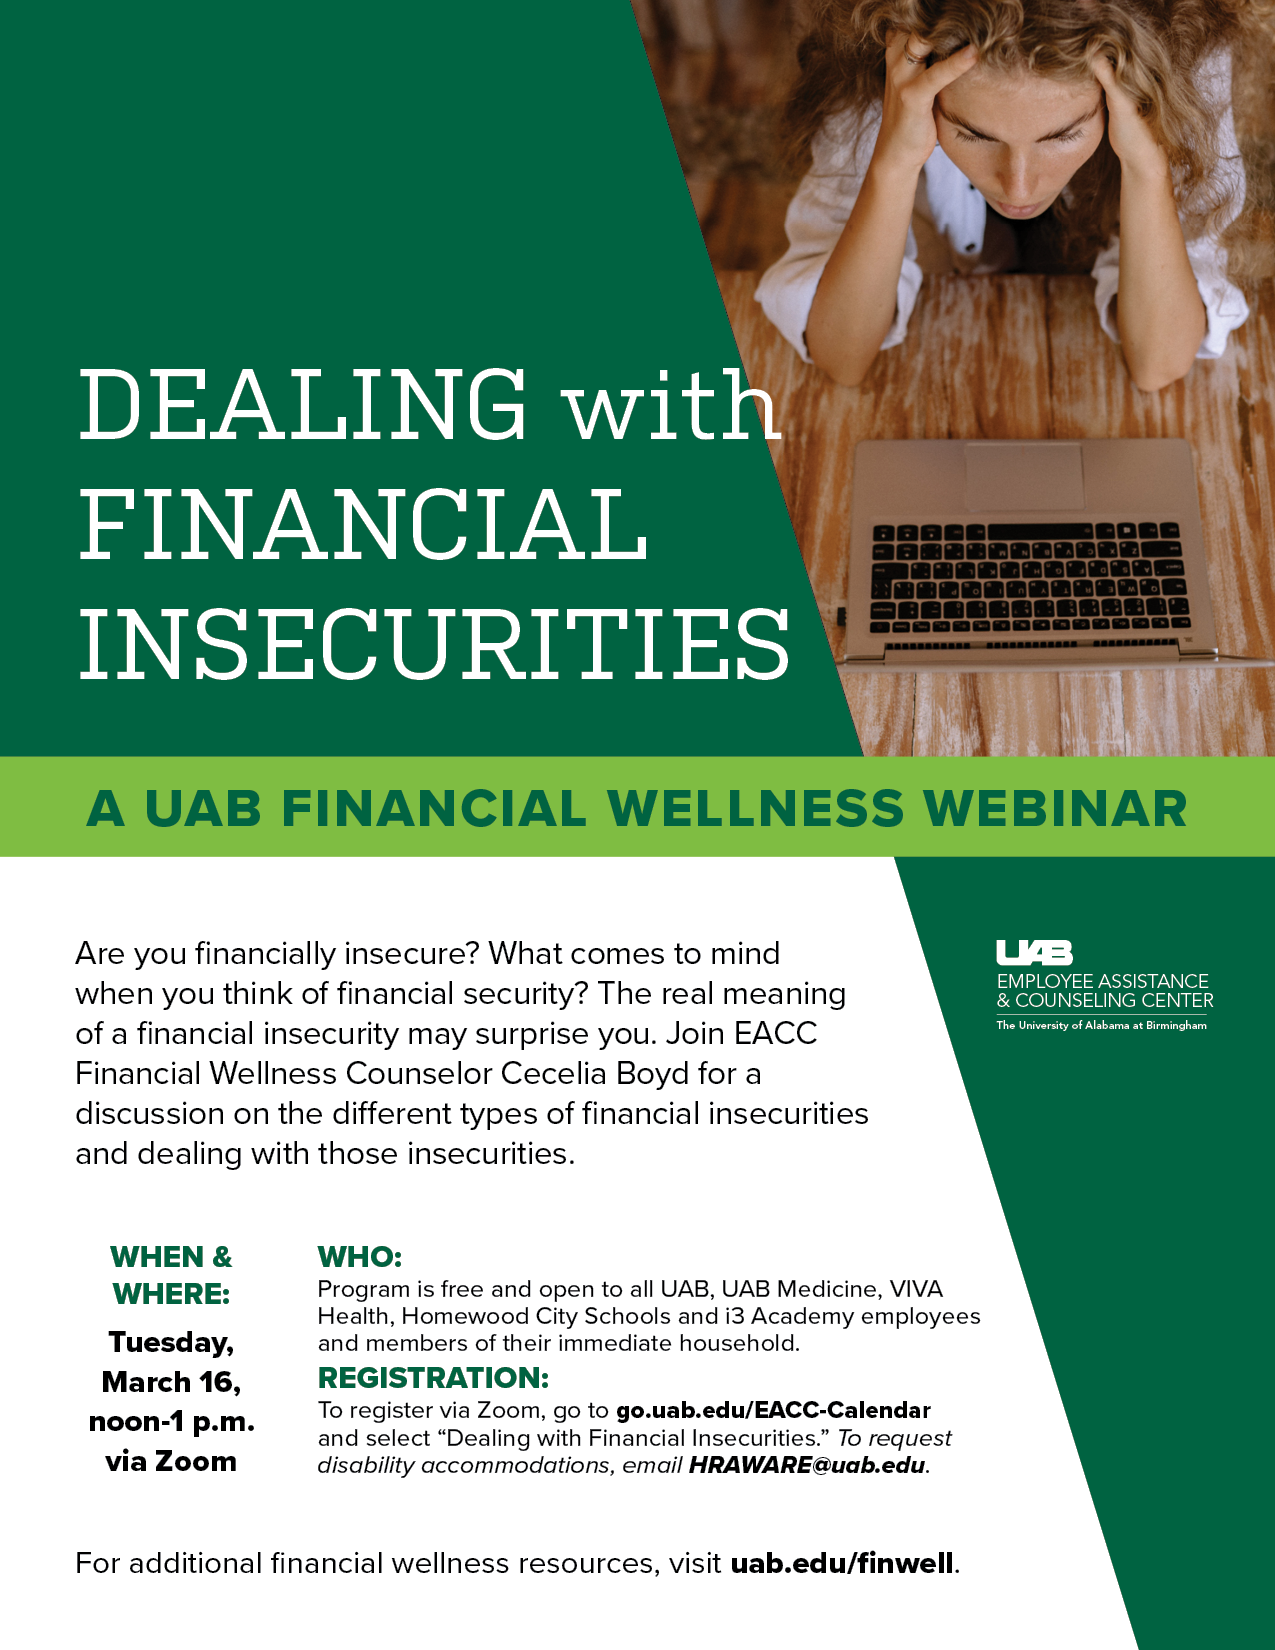 Dealing with Financial Insecurities